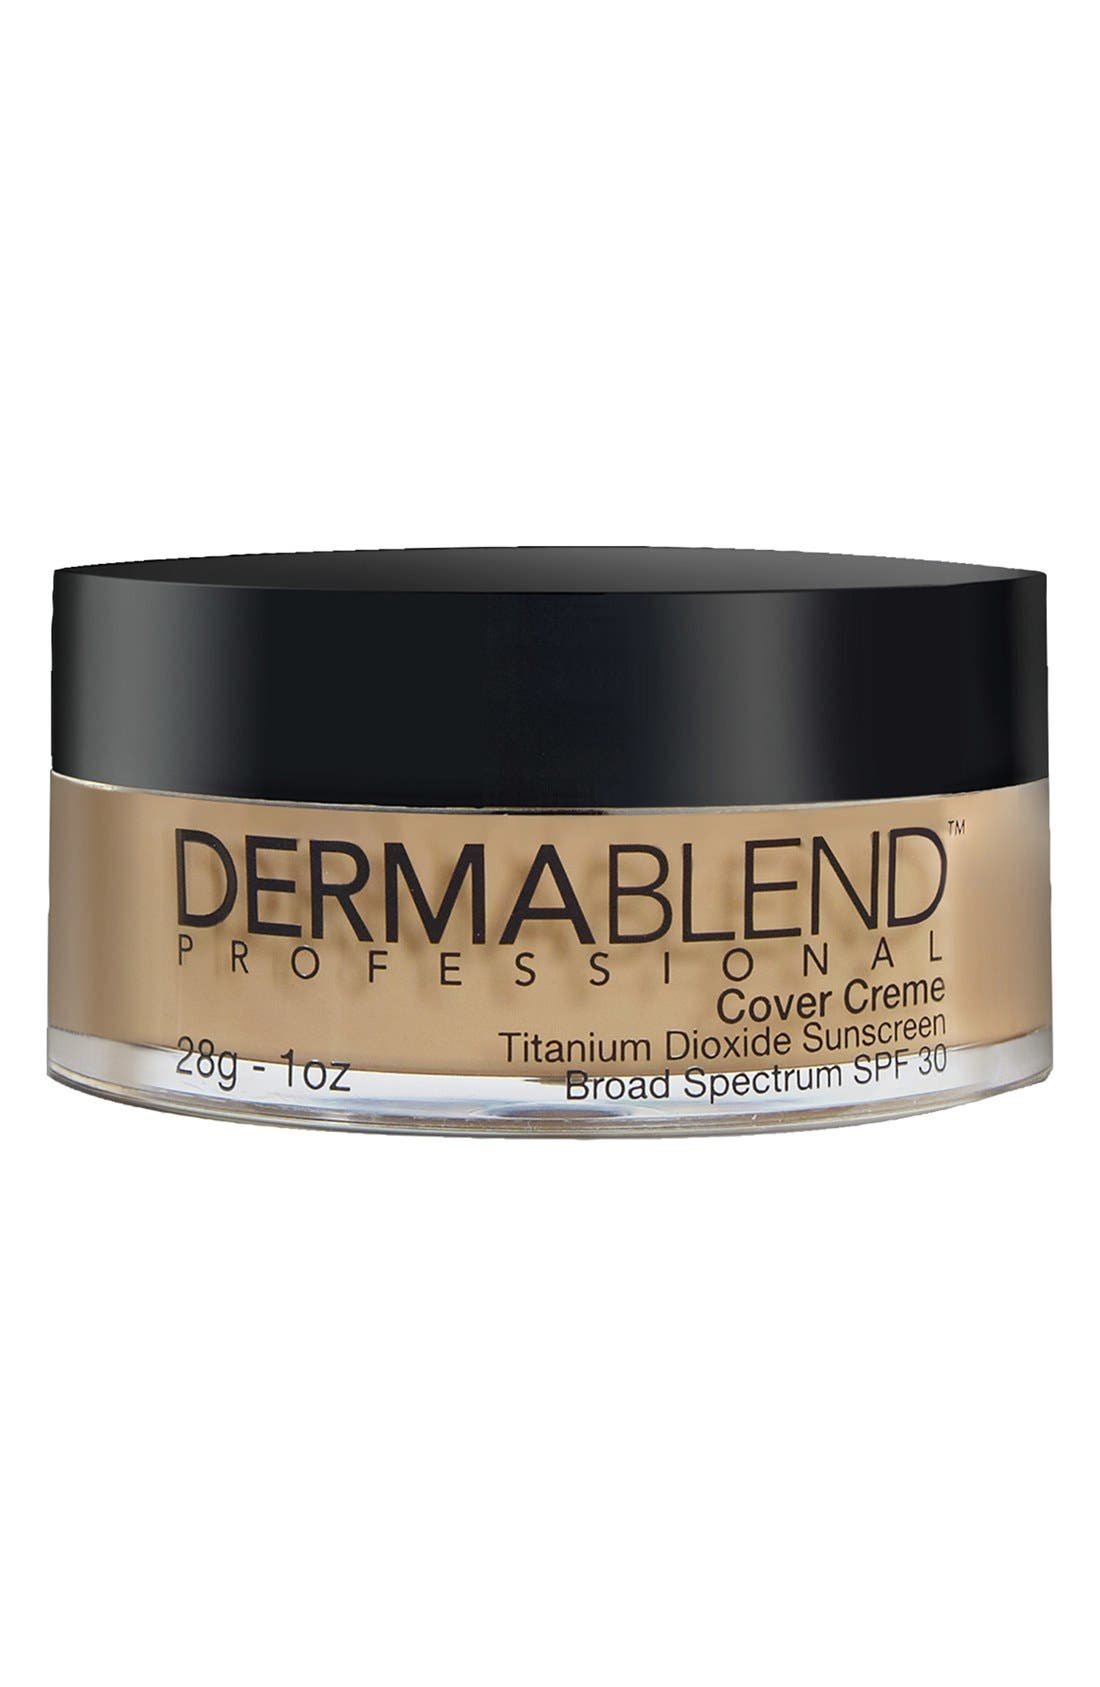 DERMABLEND,                             Cover Creme Broad Spectrum SPF 30,                             Main thumbnail 1, color,                             204